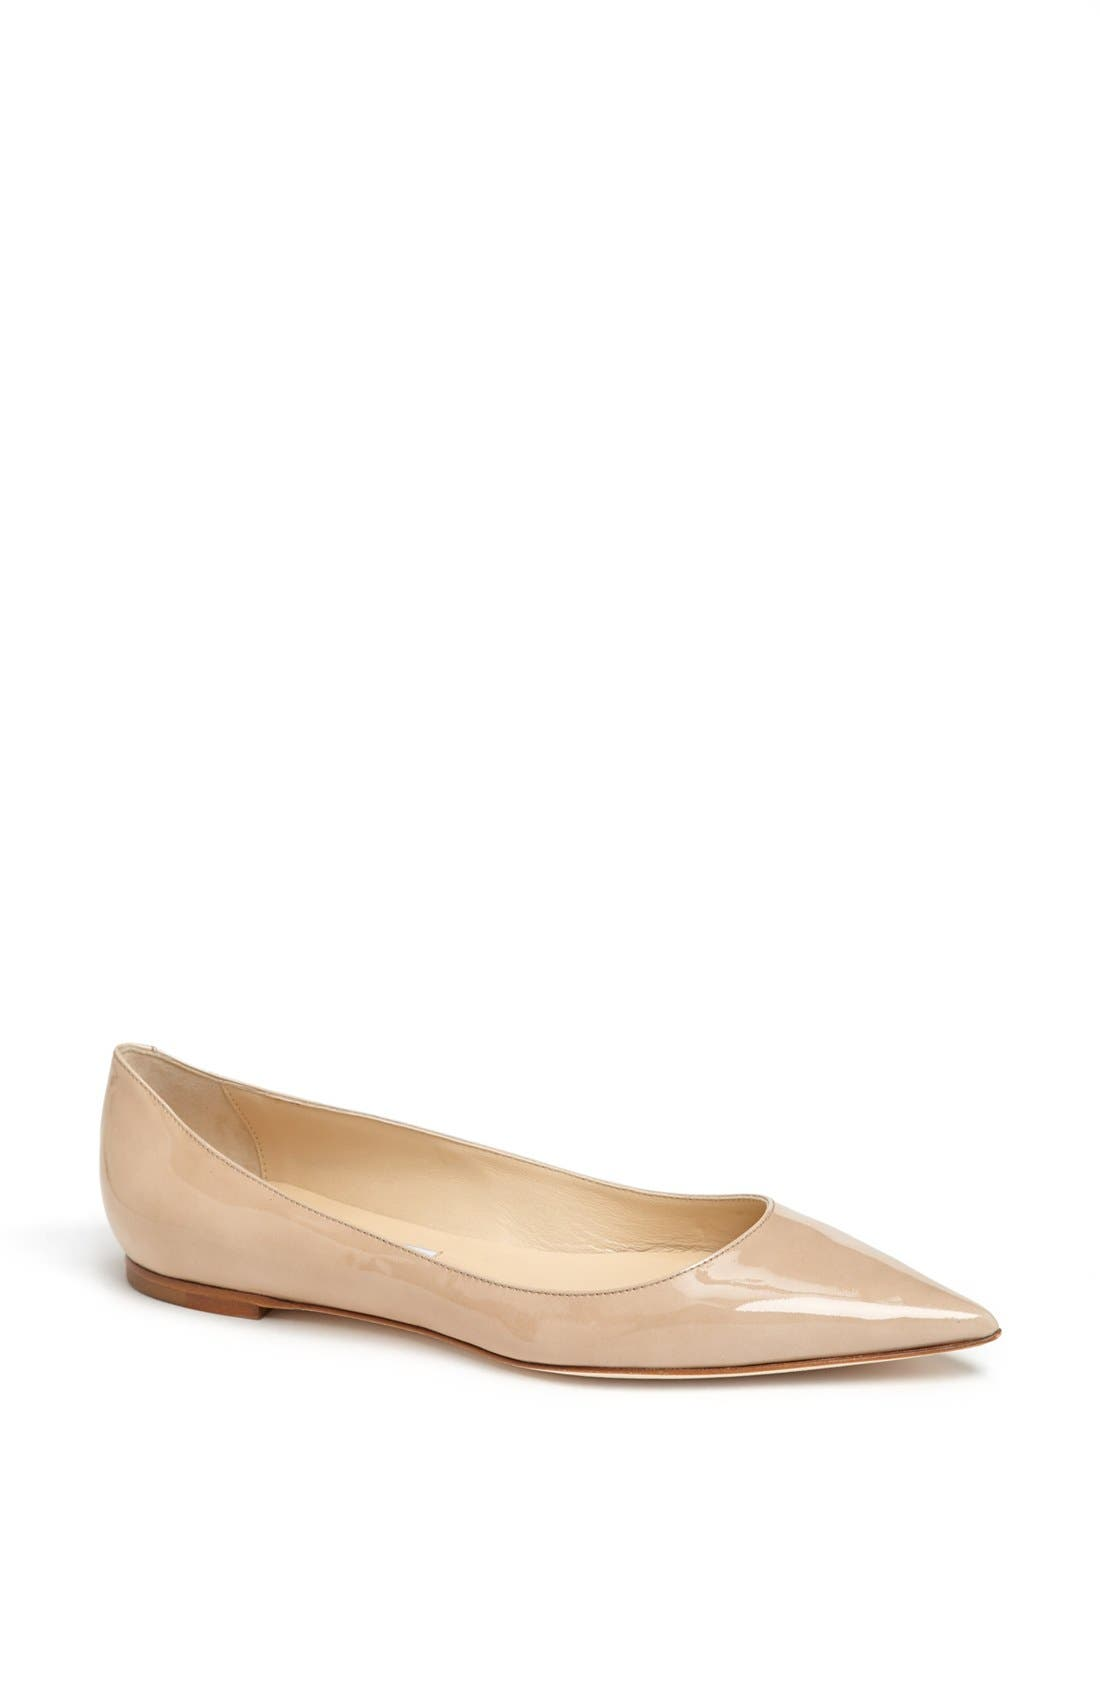 Main Image - Jimmy Choo 'Alina' Pointy Toe Flat (Women)